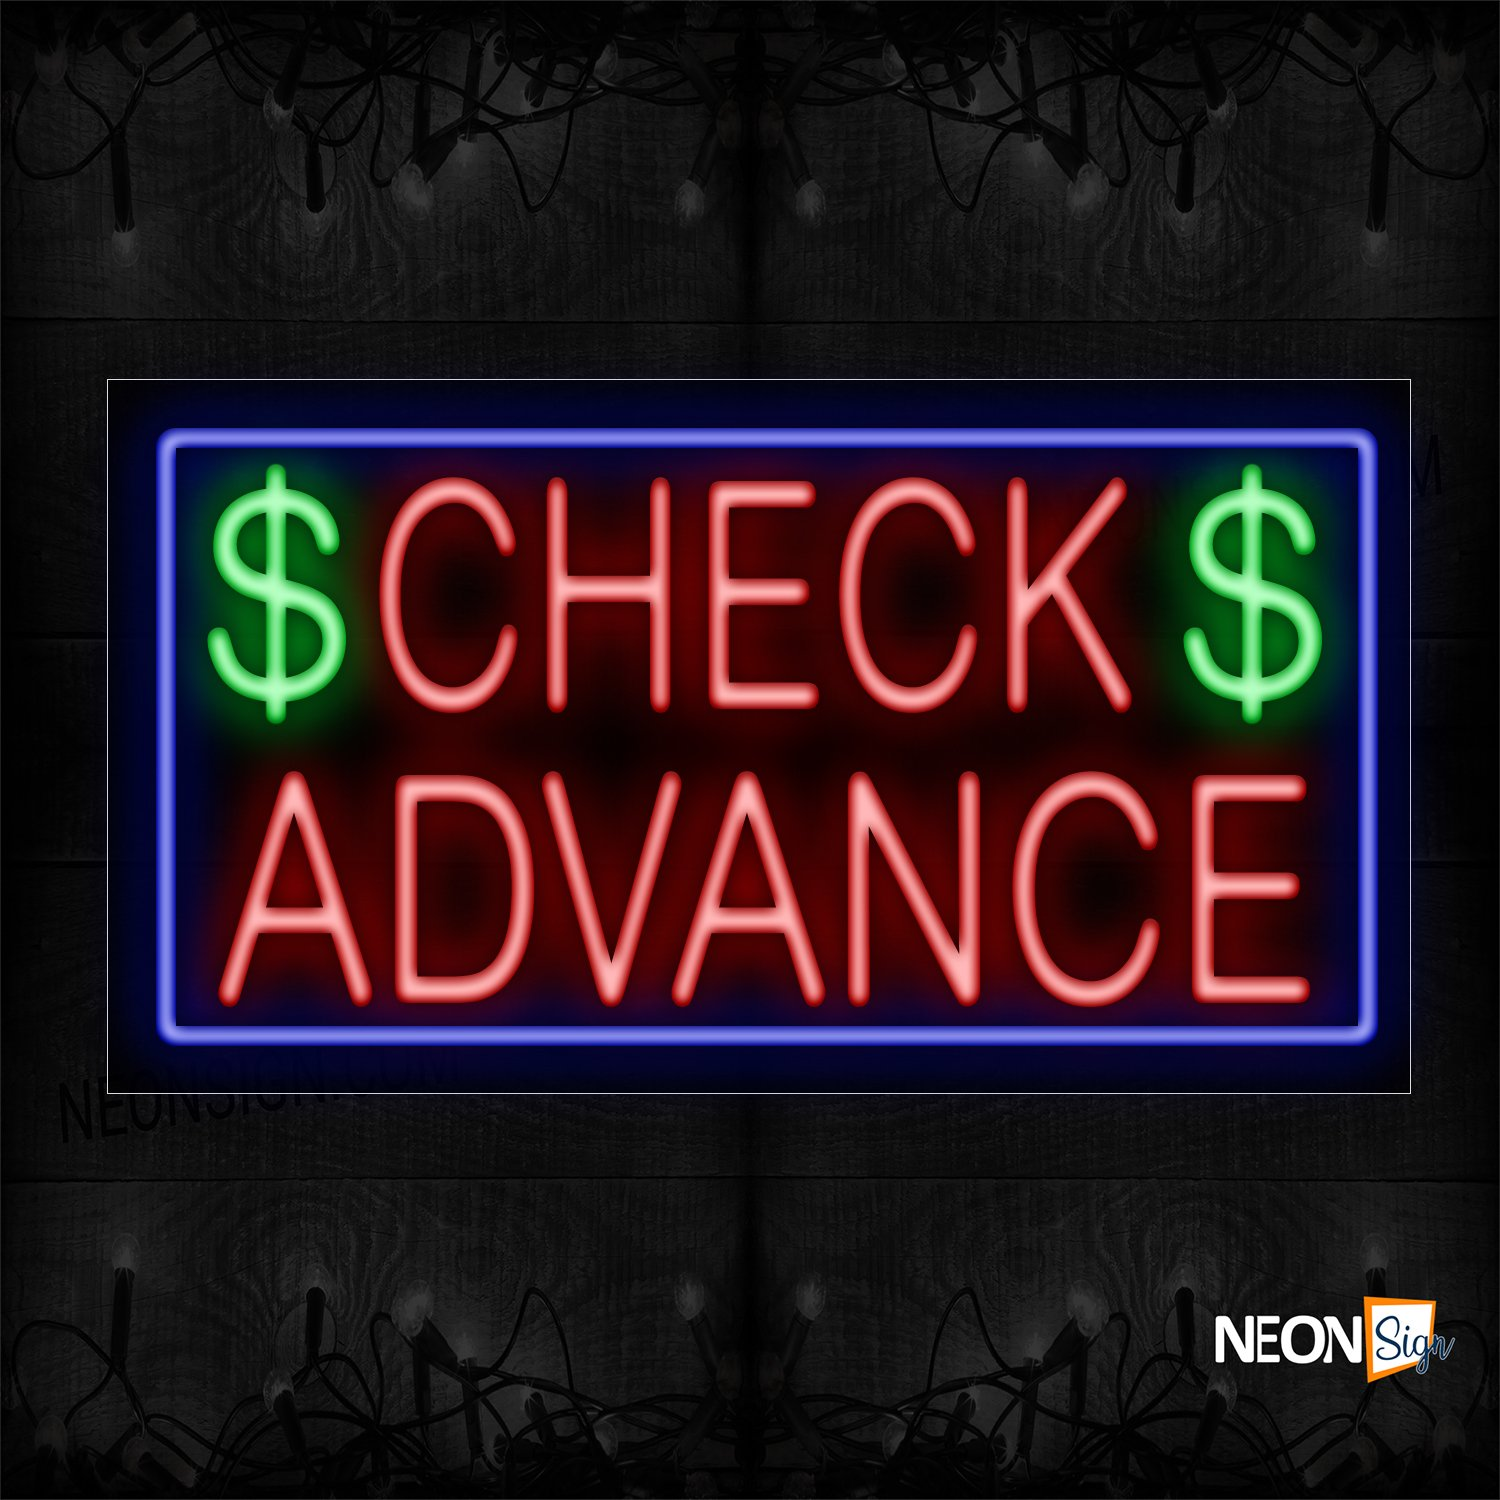 Image of 11674 $ Check $ Advance In Red With Blue Border Neon Sign_20x37 Black Backing